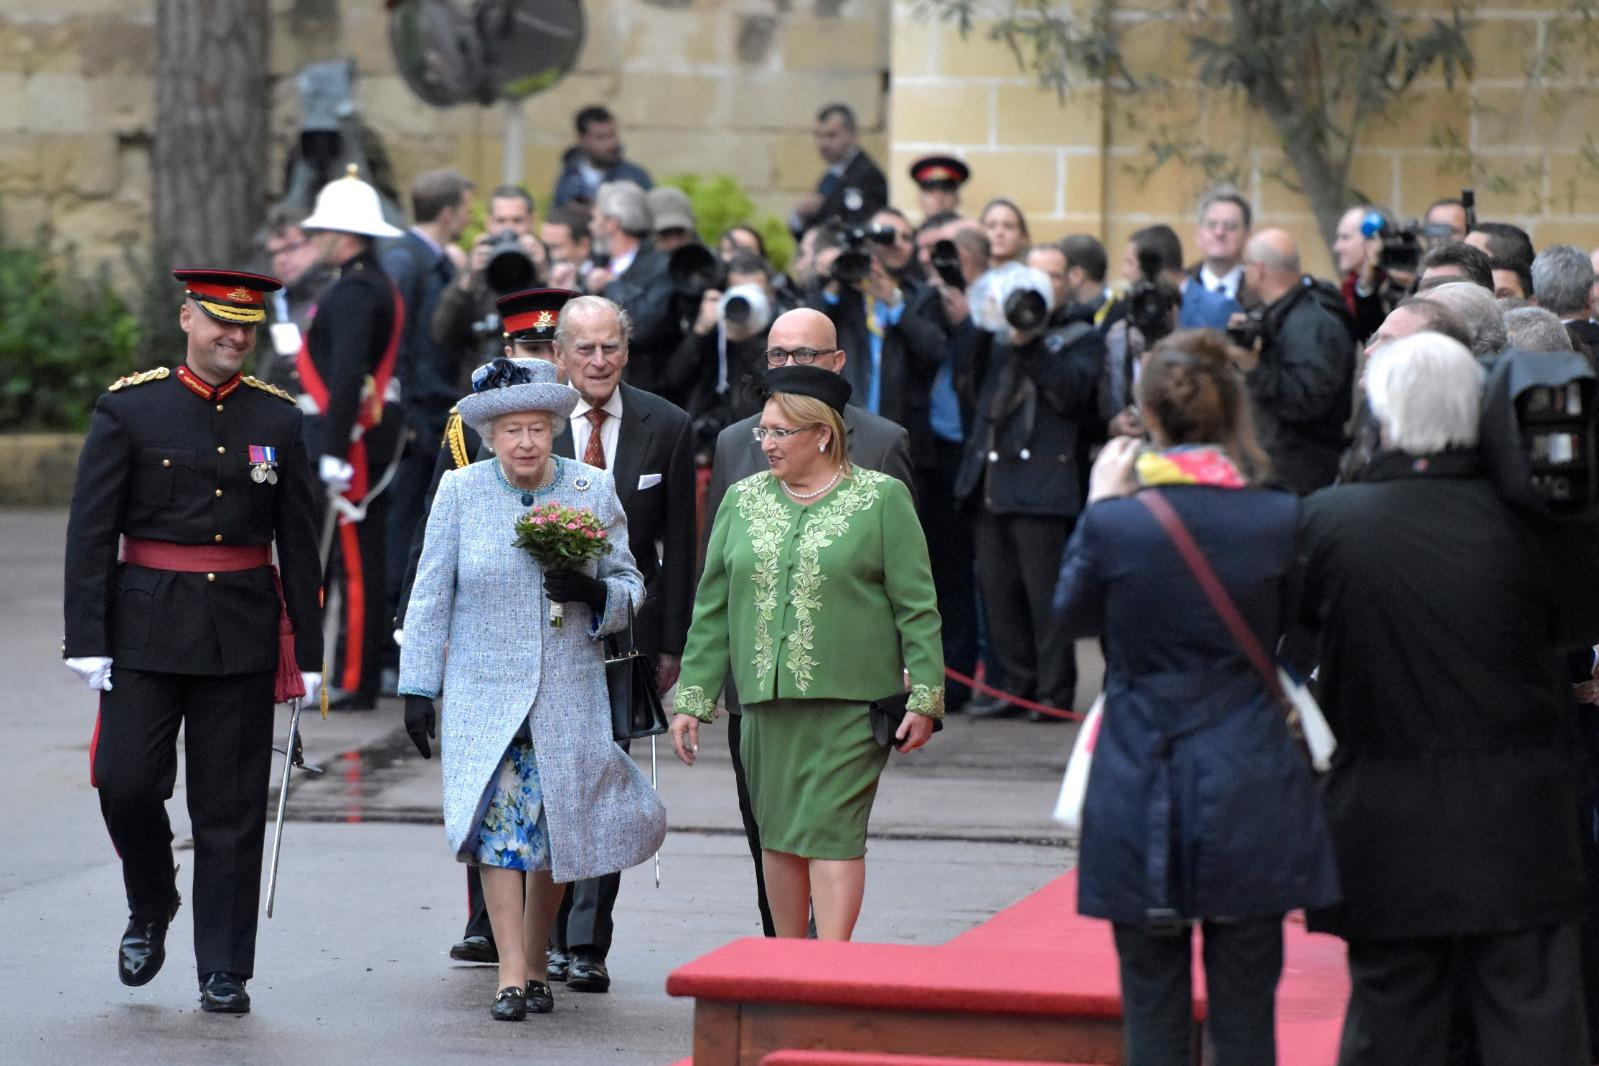 Prince Philip walks behind Queen Elizabeth II and Maltese president Marie-Louise Coleiro Preca during a visit in November 2015. Photo: Matthew Mirabelli